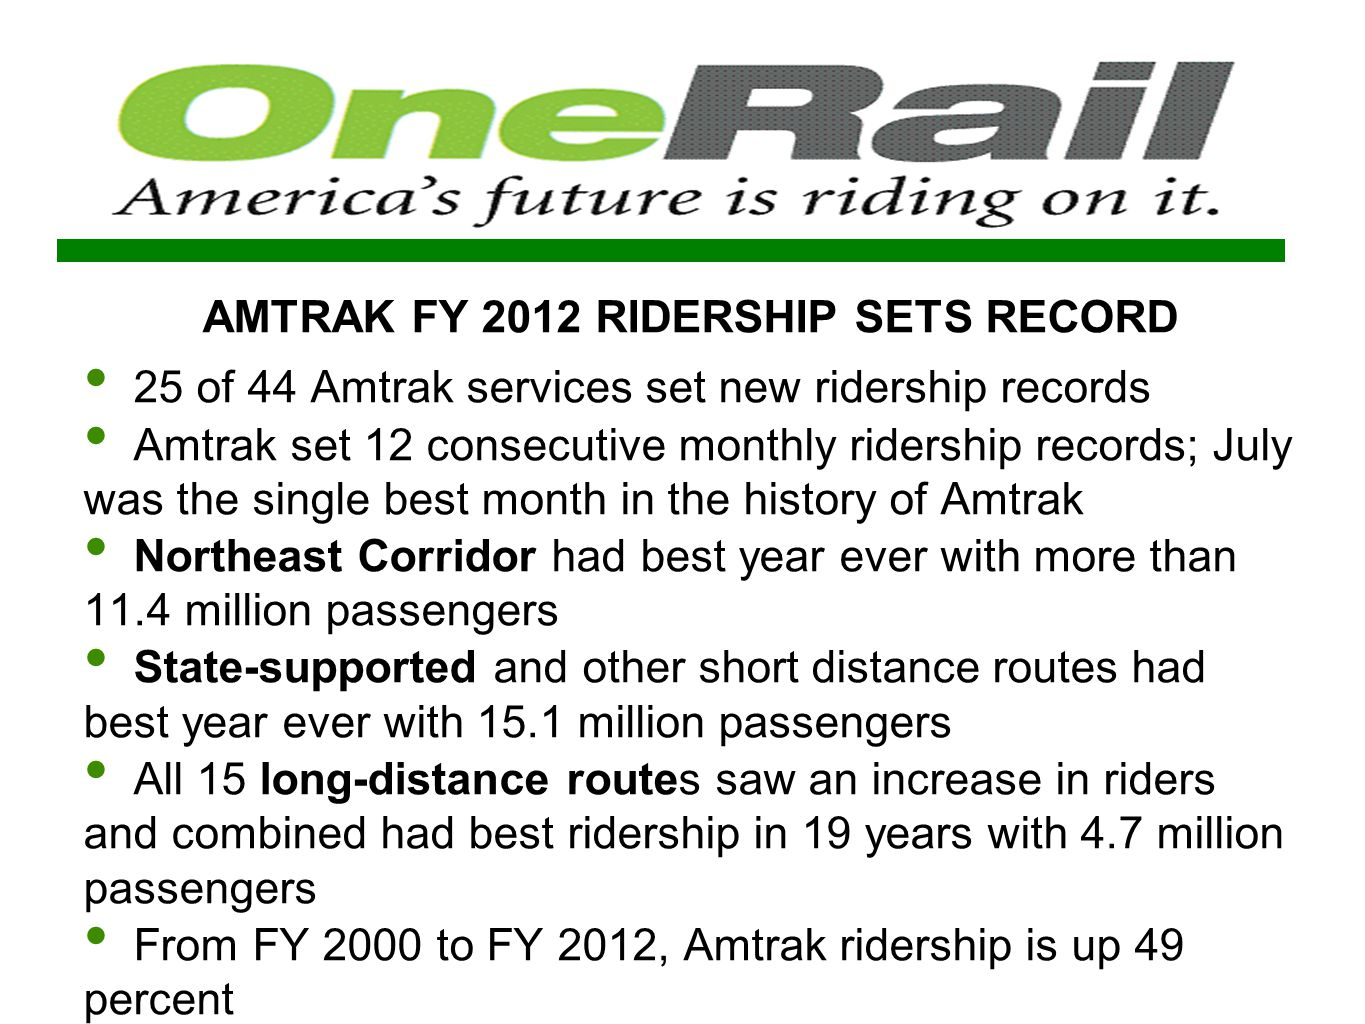 AMTRAK FY 2012 RIDERSHIP SETS RECORD 25 of 44 Amtrak services set new ridership records Amtrak set 12 consecutive monthly ridership records; July was the single best month in the history of Amtrak Northeast Corridor had best year ever with more than 11.4 million passengers State-supported and other short distance routes had best year ever with 15.1 million passengers All 15 long-distance routes saw an increase in riders and combined had best ridership in 19 years with 4.7 million passengers From FY 2000 to FY 2012, Amtrak ridership is up 49 percent